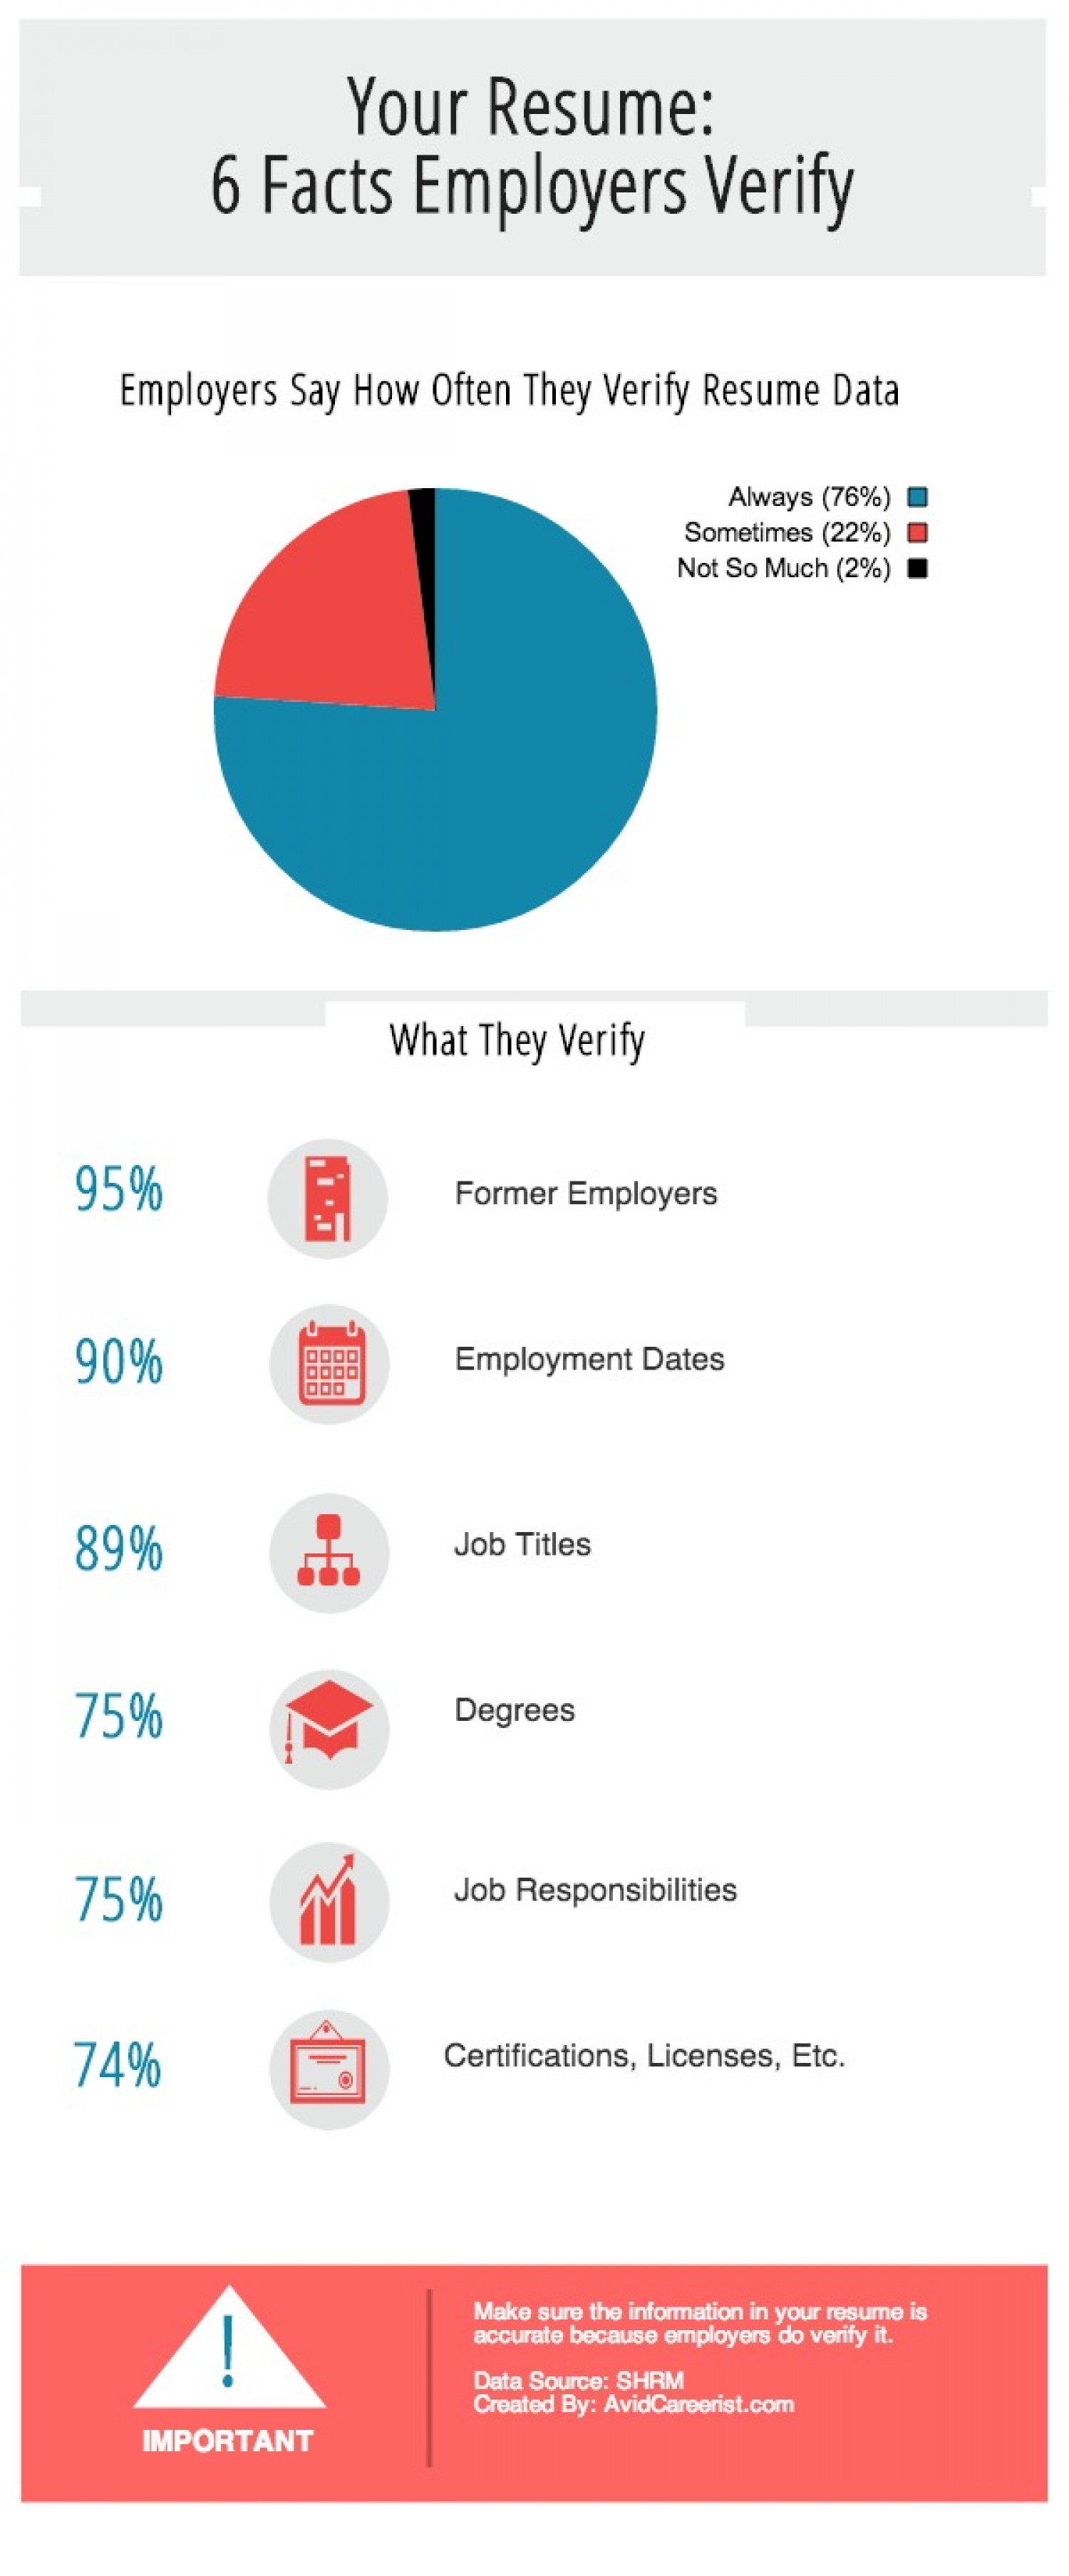 Your Resume: 6 Fact Employers Verify Infographic